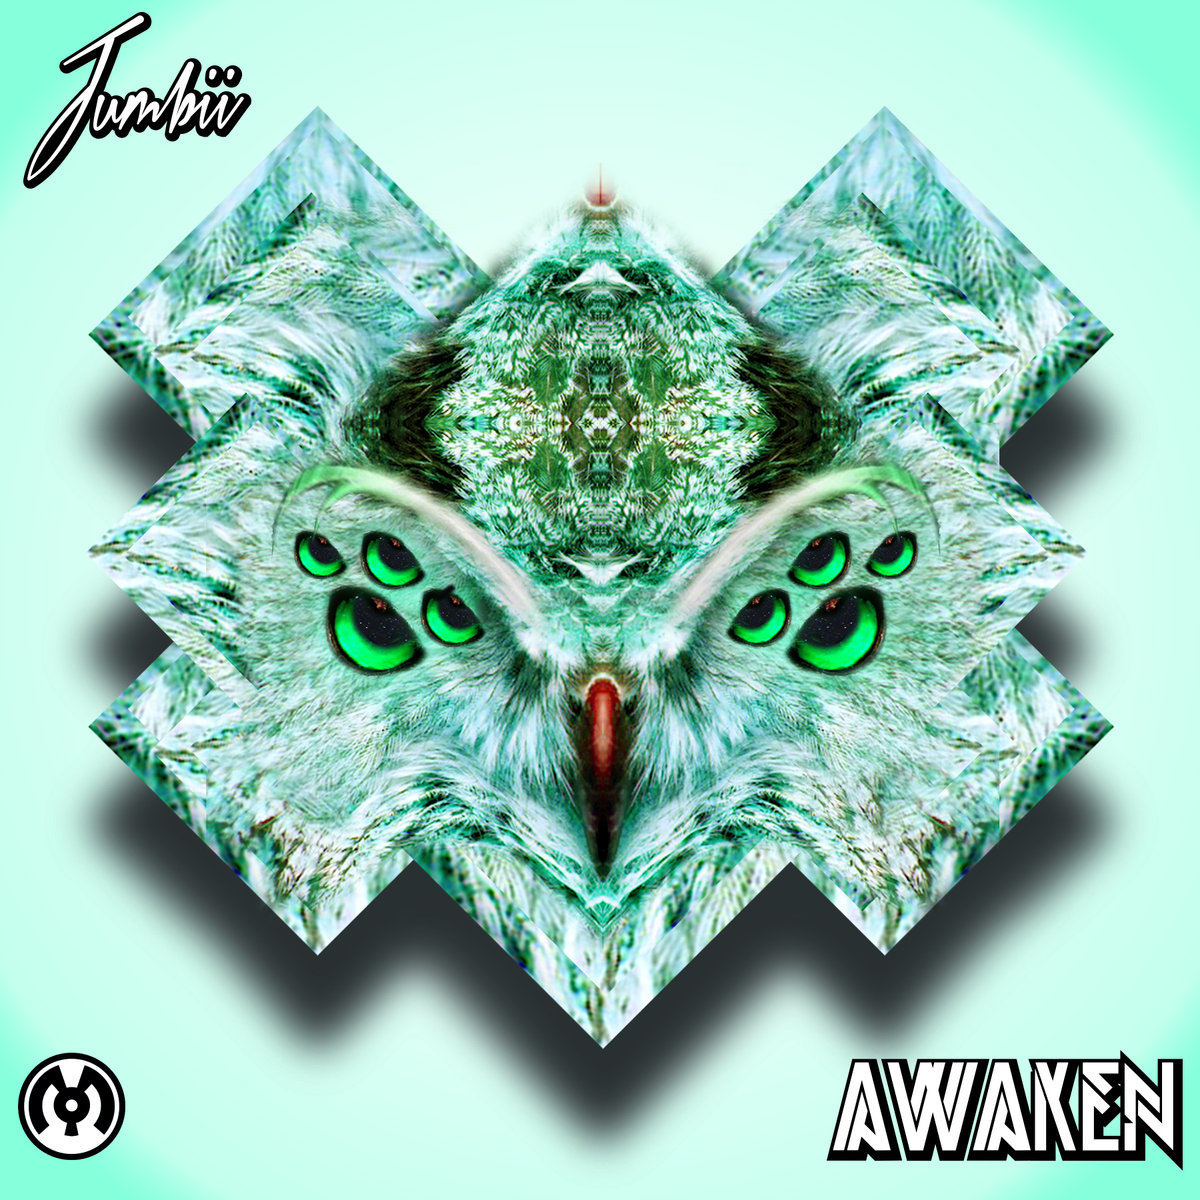 Jumbii - Taken @ 'Awaken' album (electronic, dubstep)